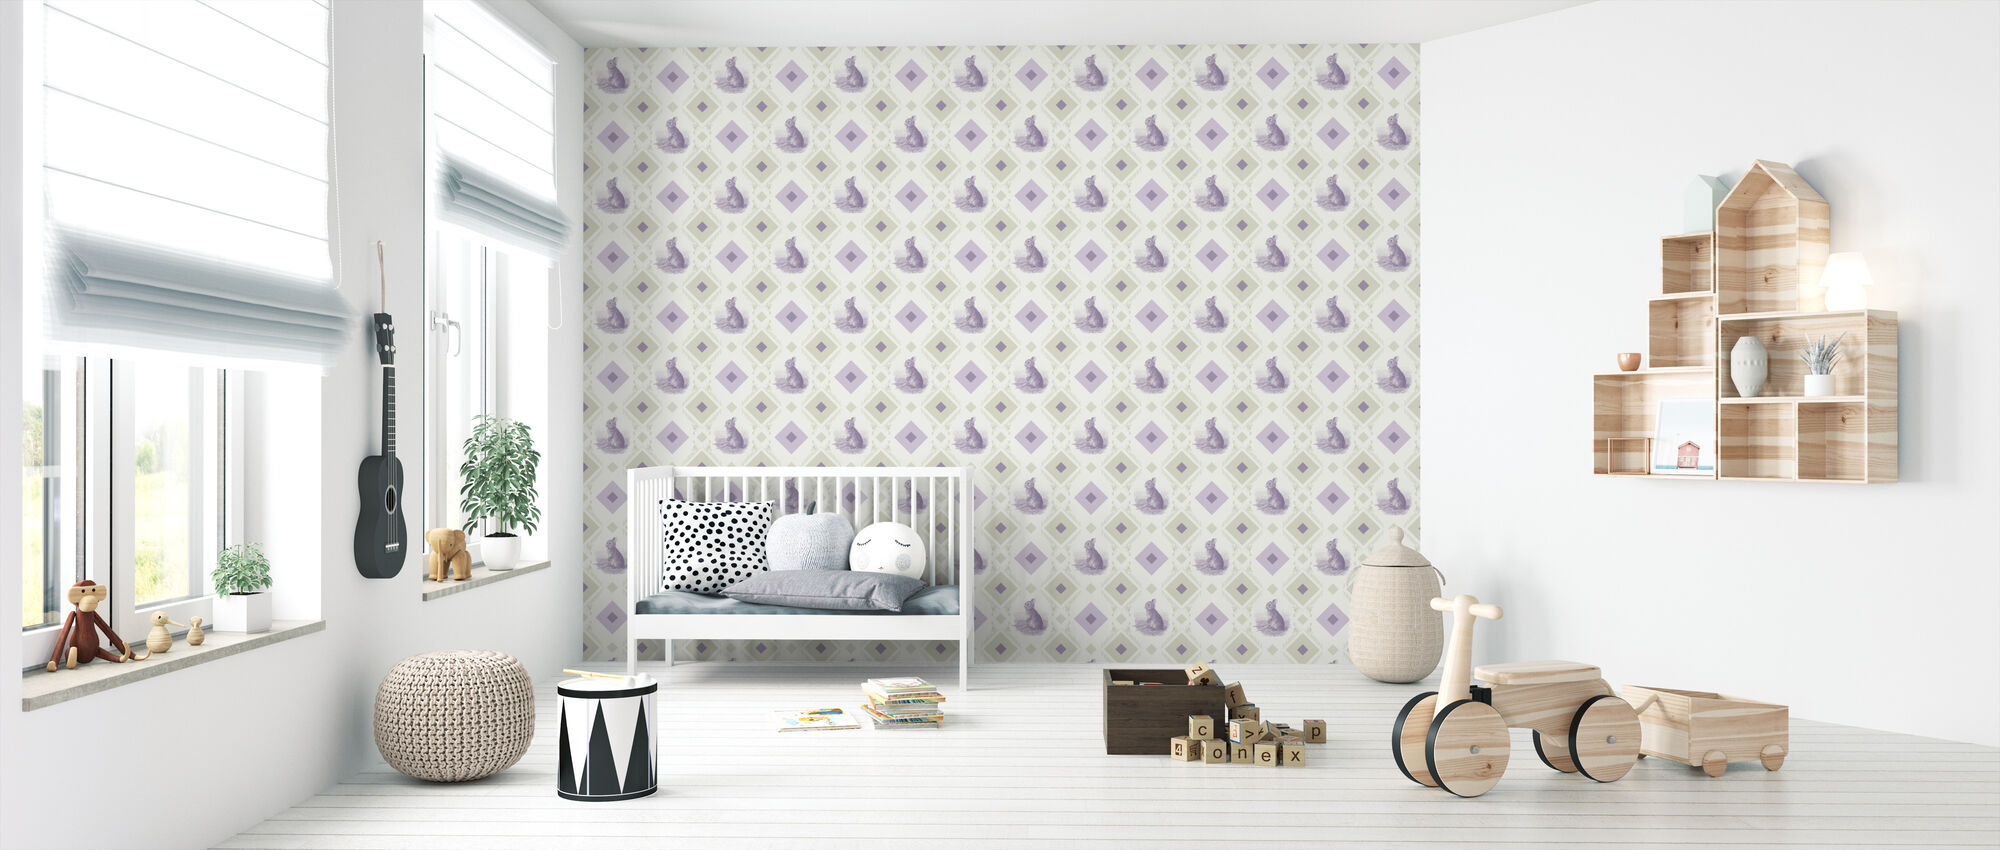 Rabbit - Gooseframe - Green Purple - Wallpaper - Nursery